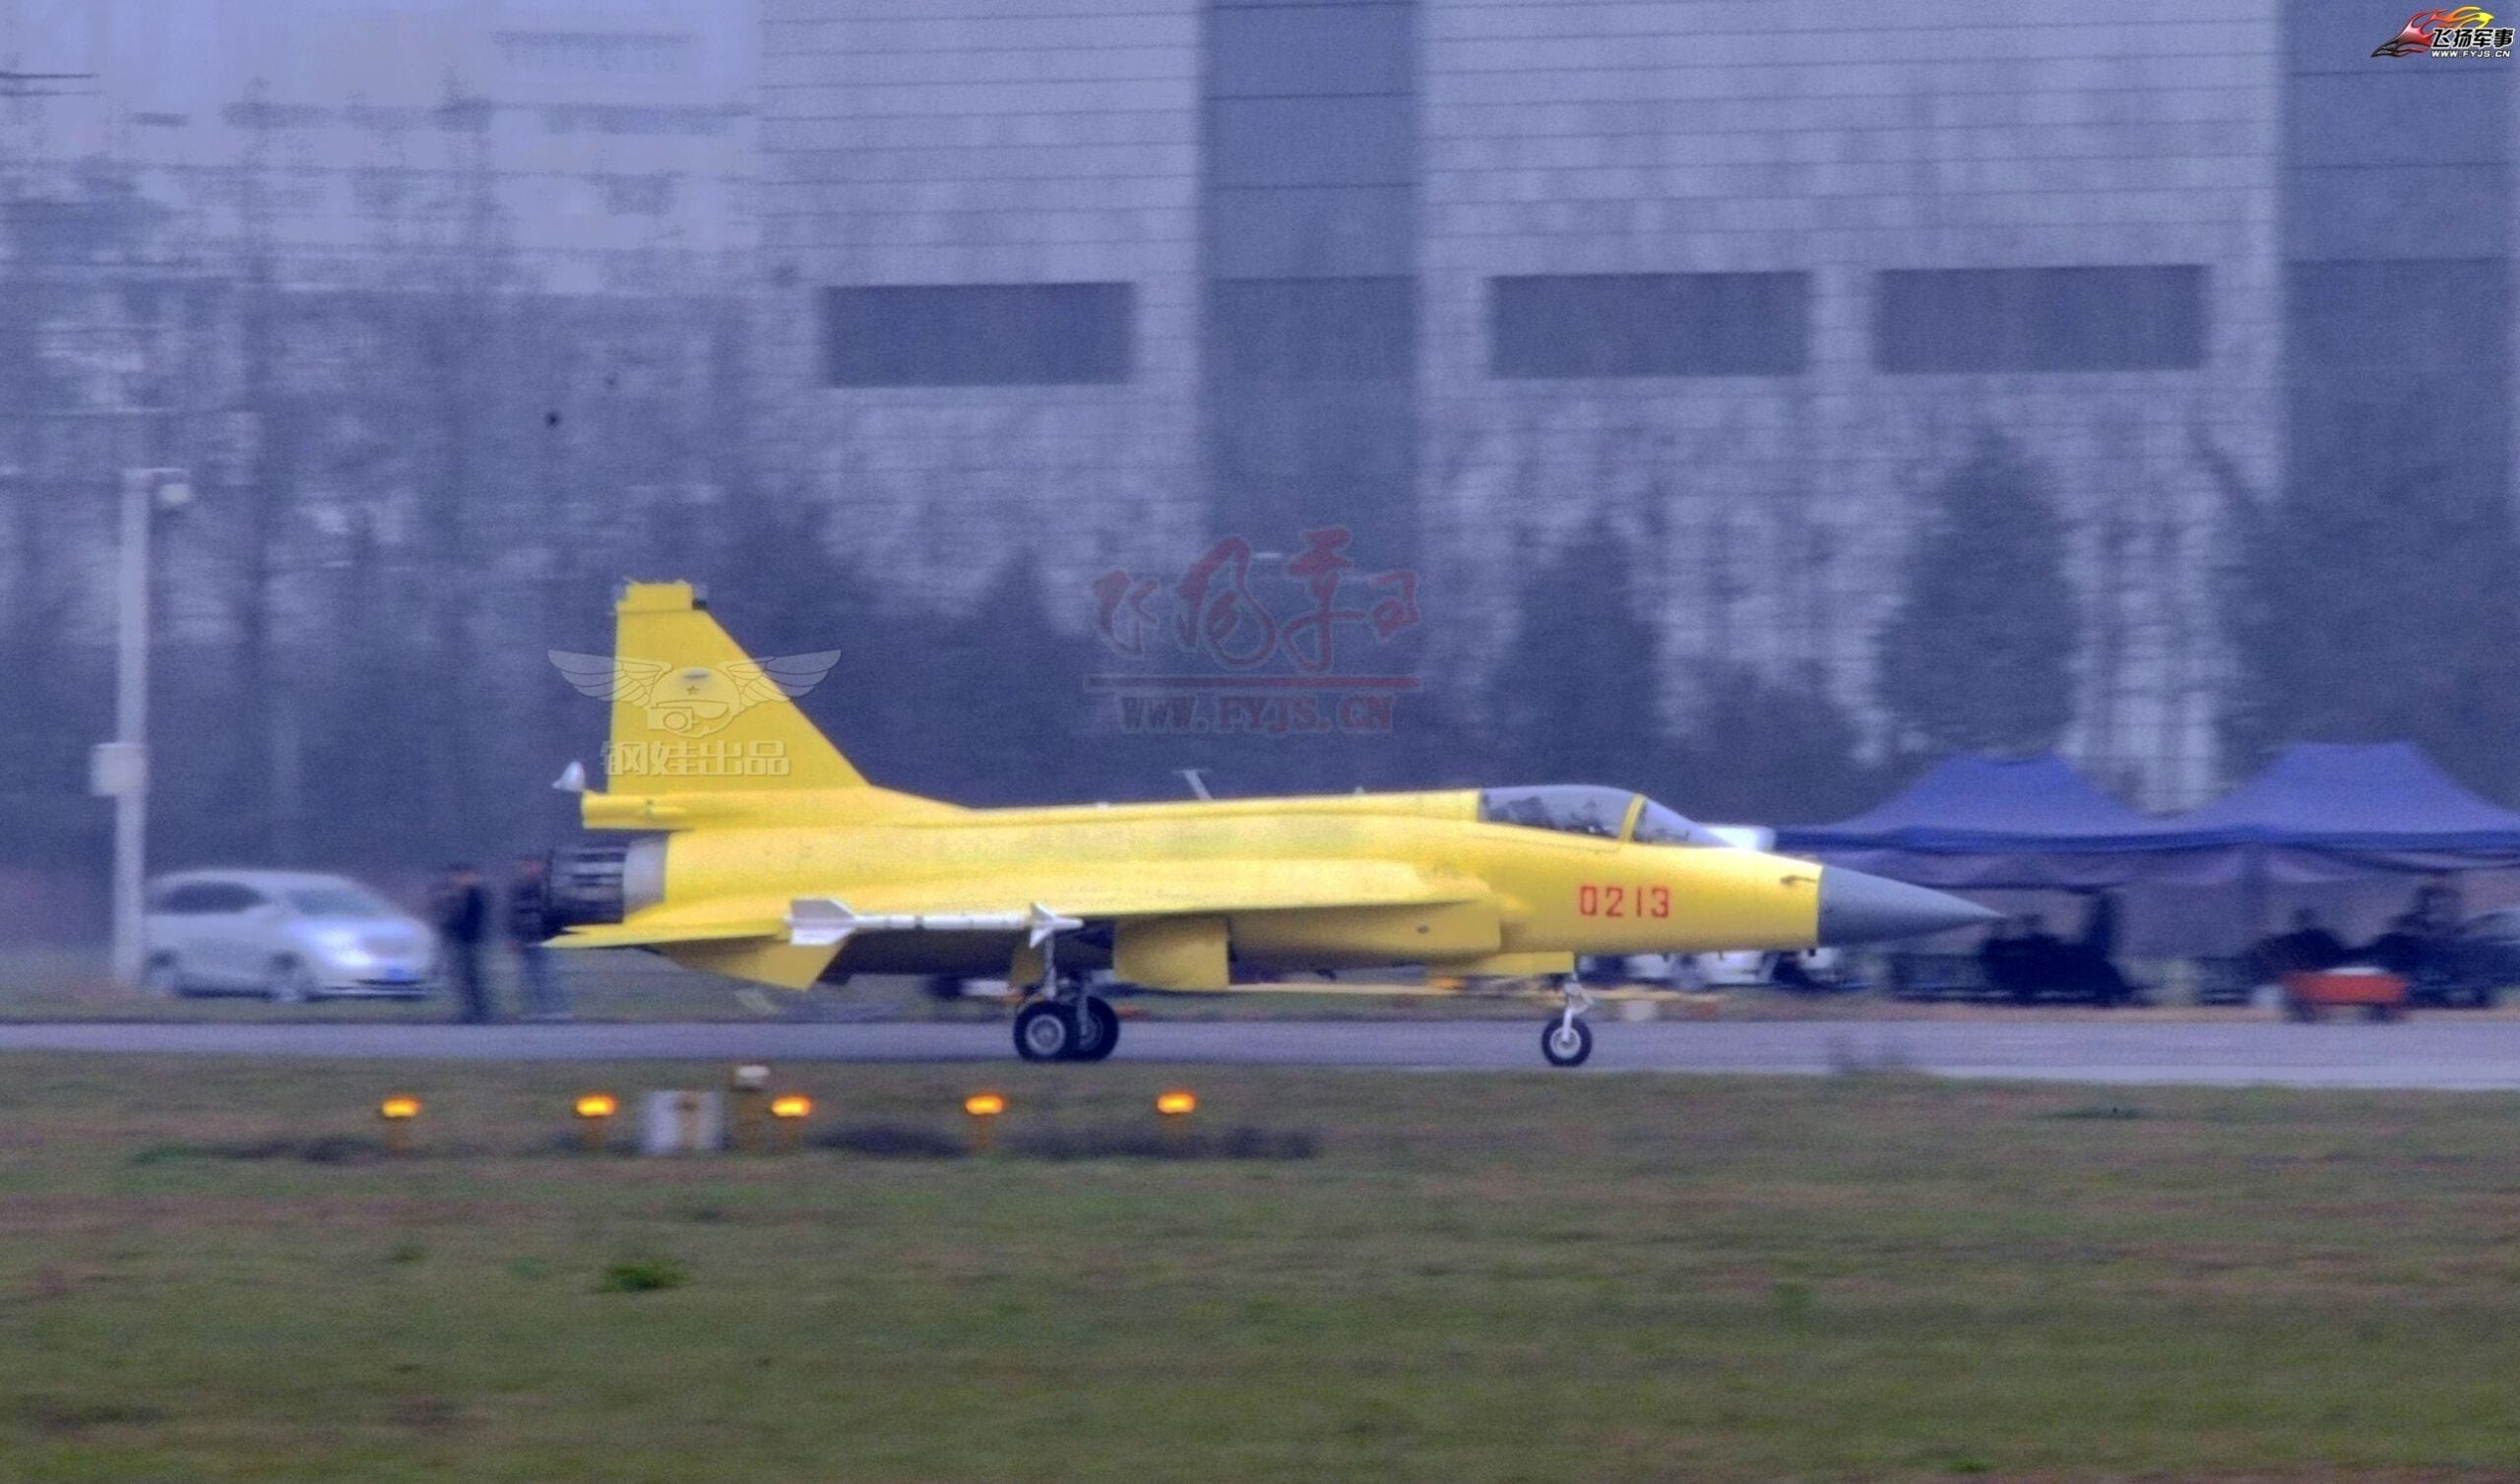 China's Military Reboots 'Fierce Dragon' Jet Fighter With Homebuilt Model